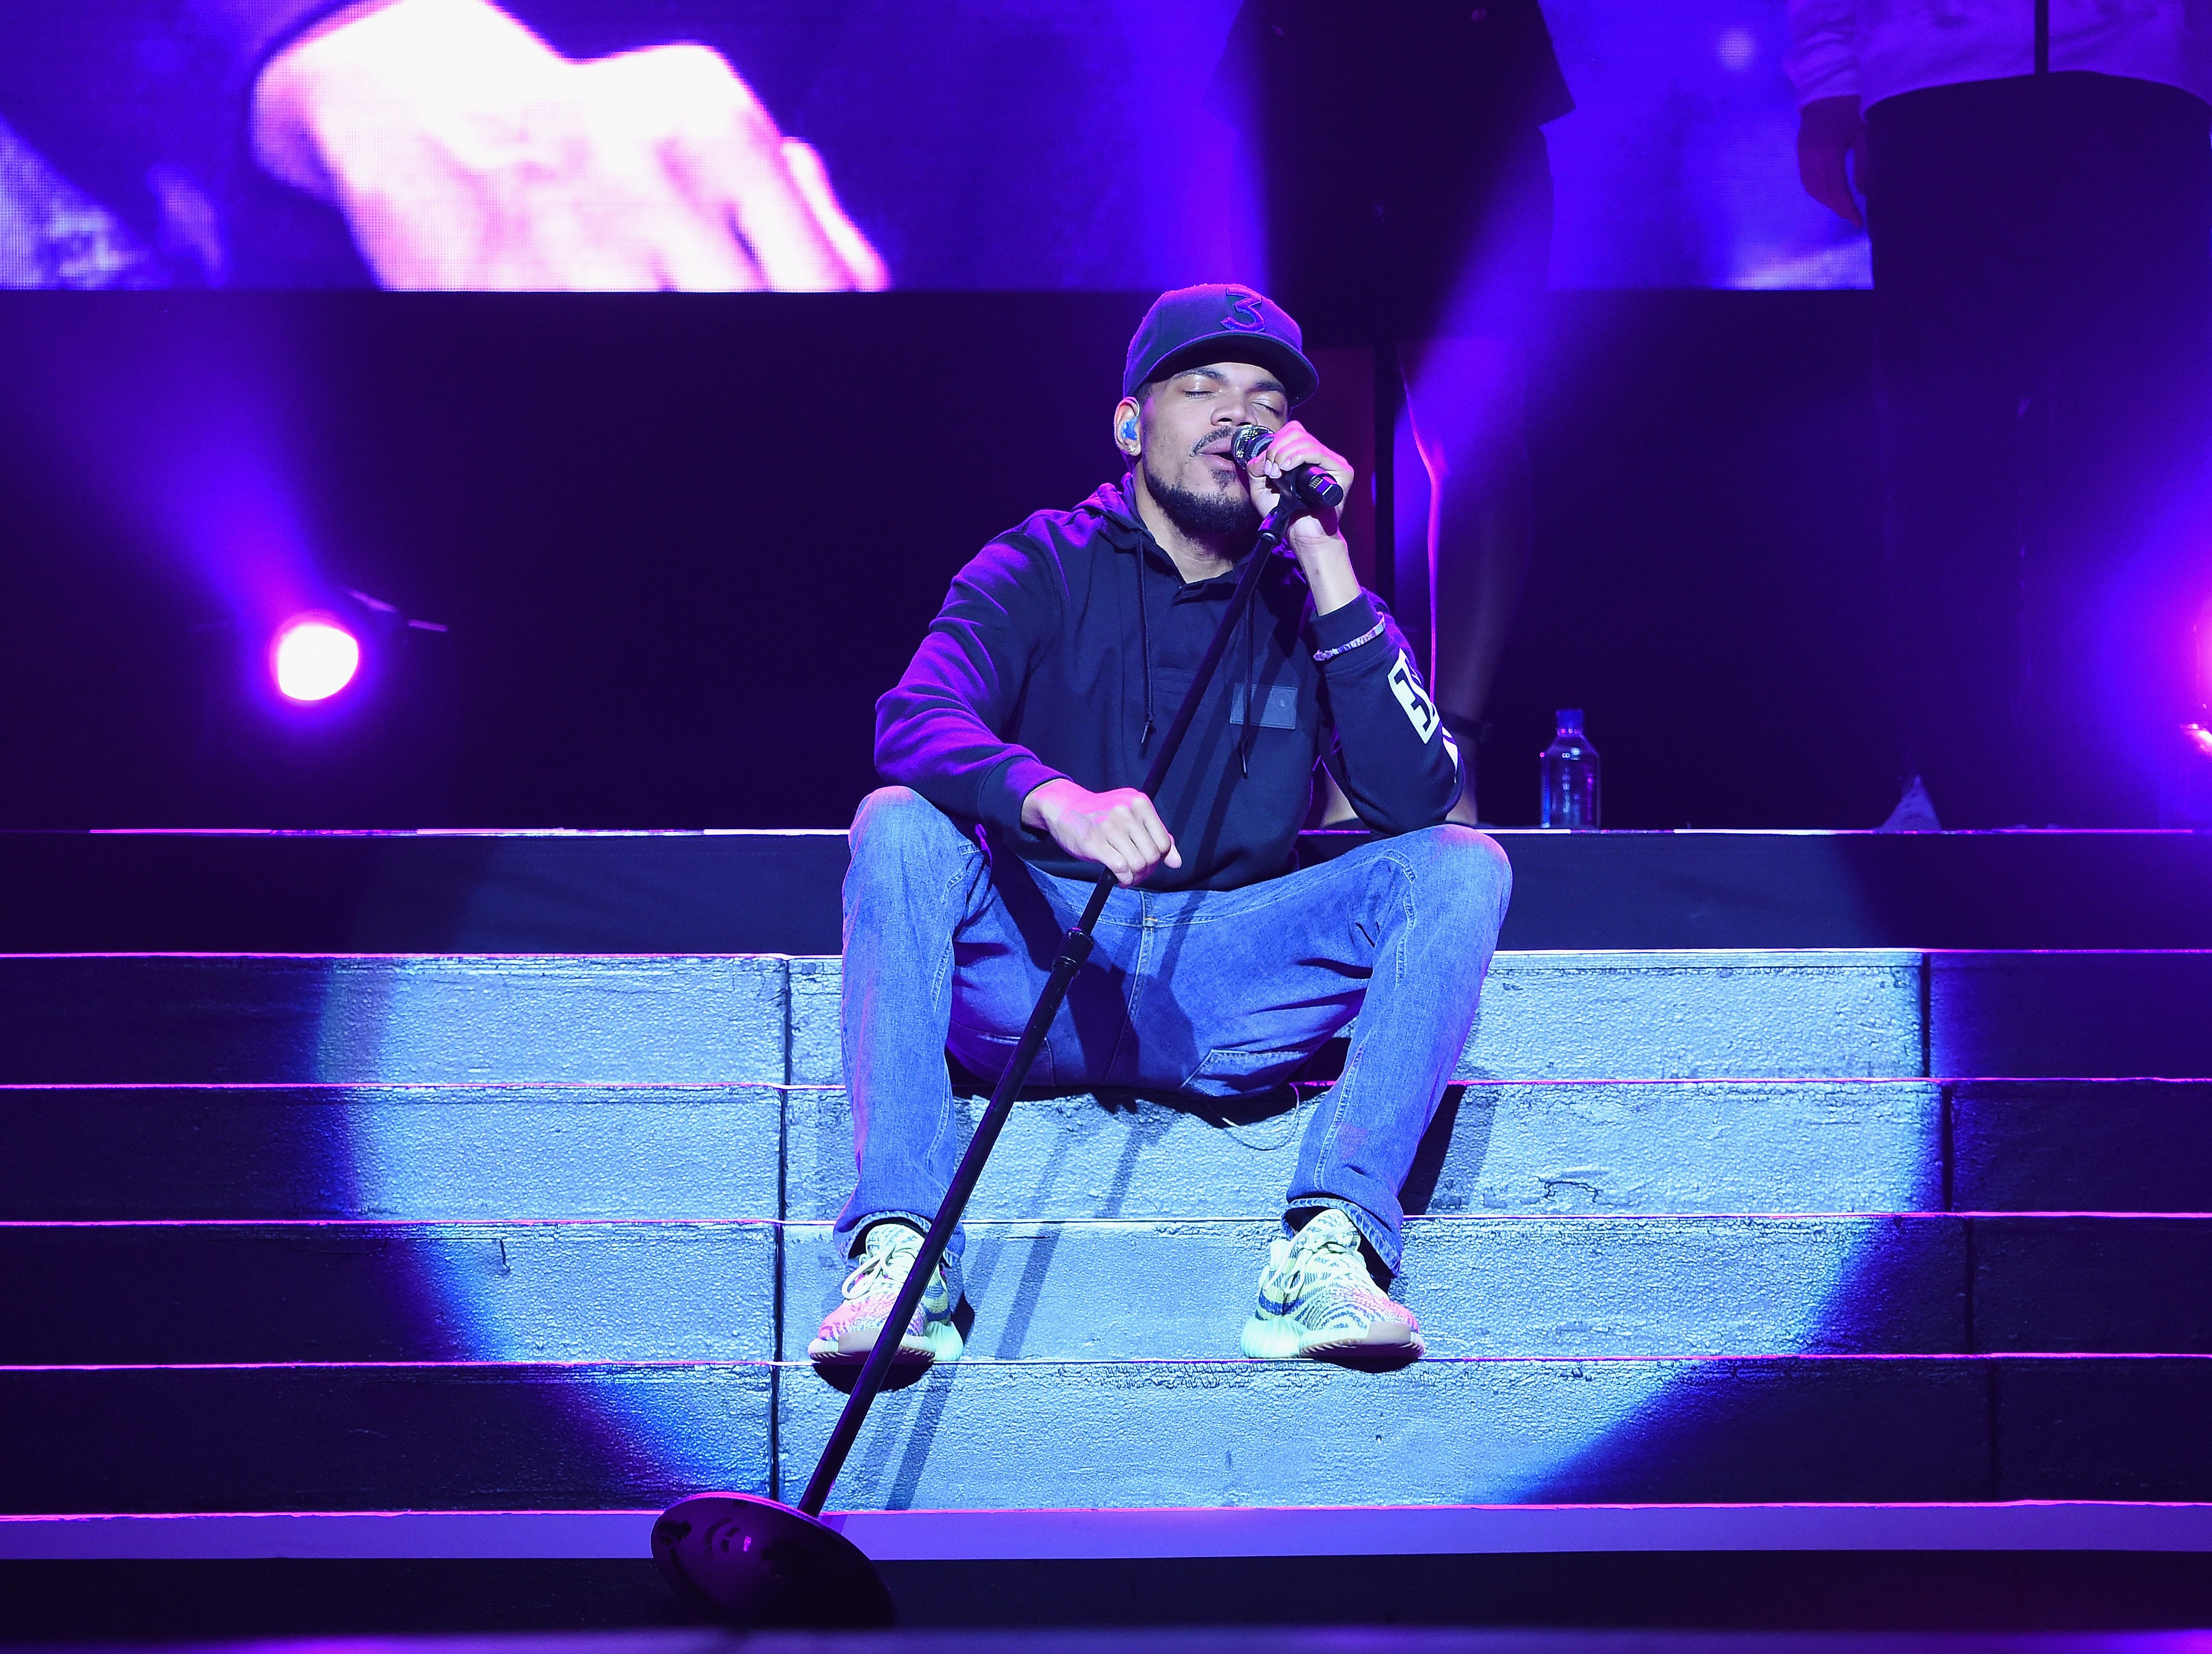 September 29: Chance The Rapper performs at the Coney Island Boardwalk in Brooklyn, New York.